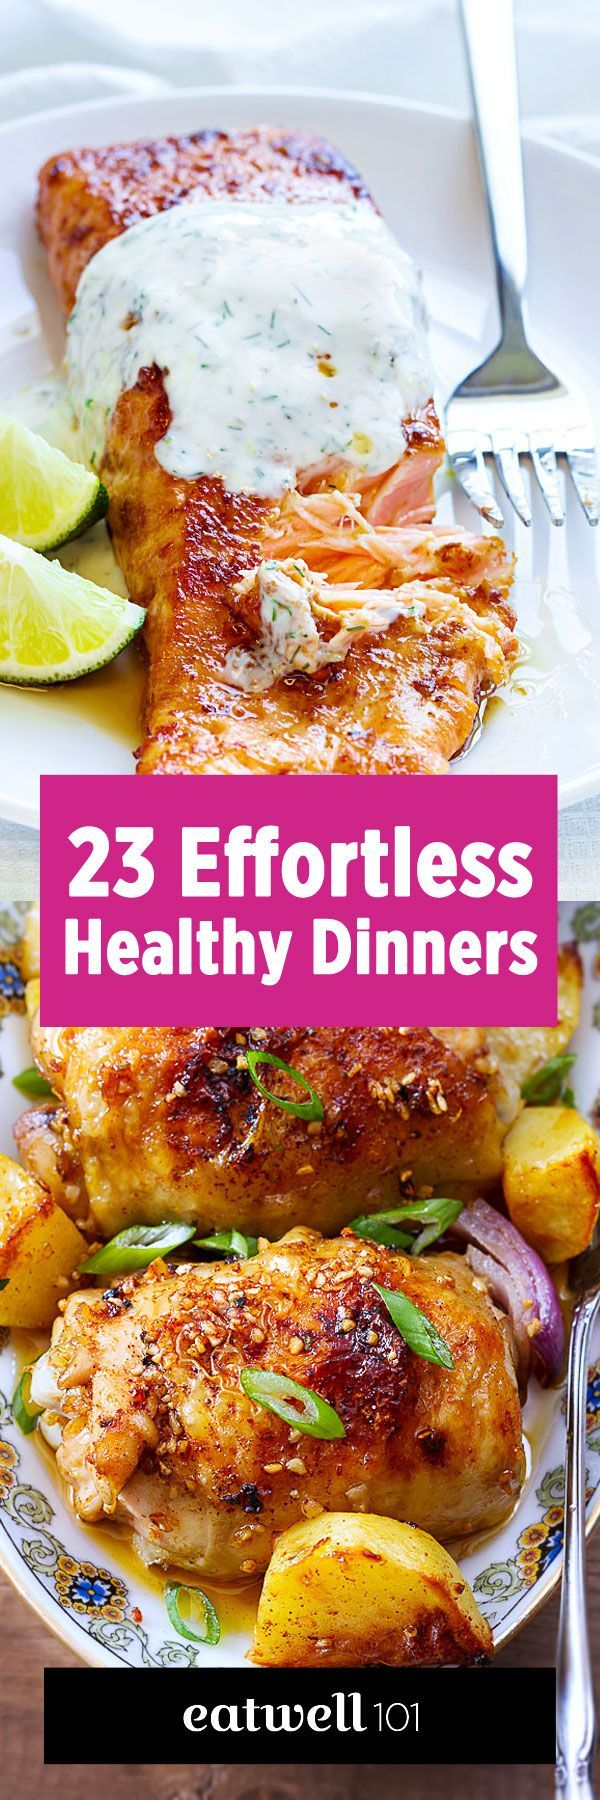 43 Low Effort and Healthy Dinner Recipes – Katherine Clayholt